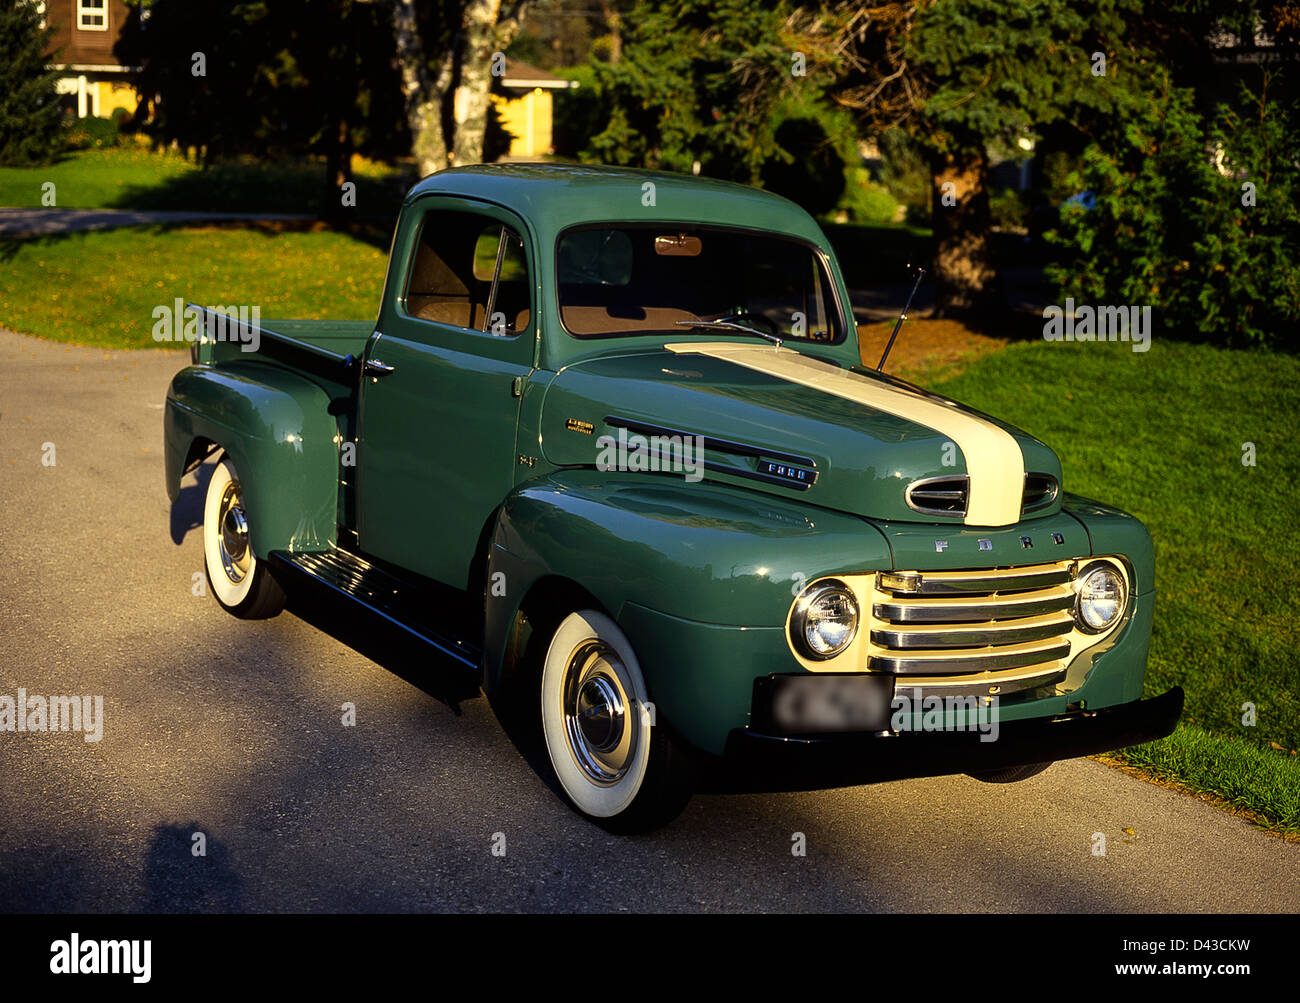 1950 ford f 47 pick up truck canadian build stock photo 54165549 alamy. Black Bedroom Furniture Sets. Home Design Ideas